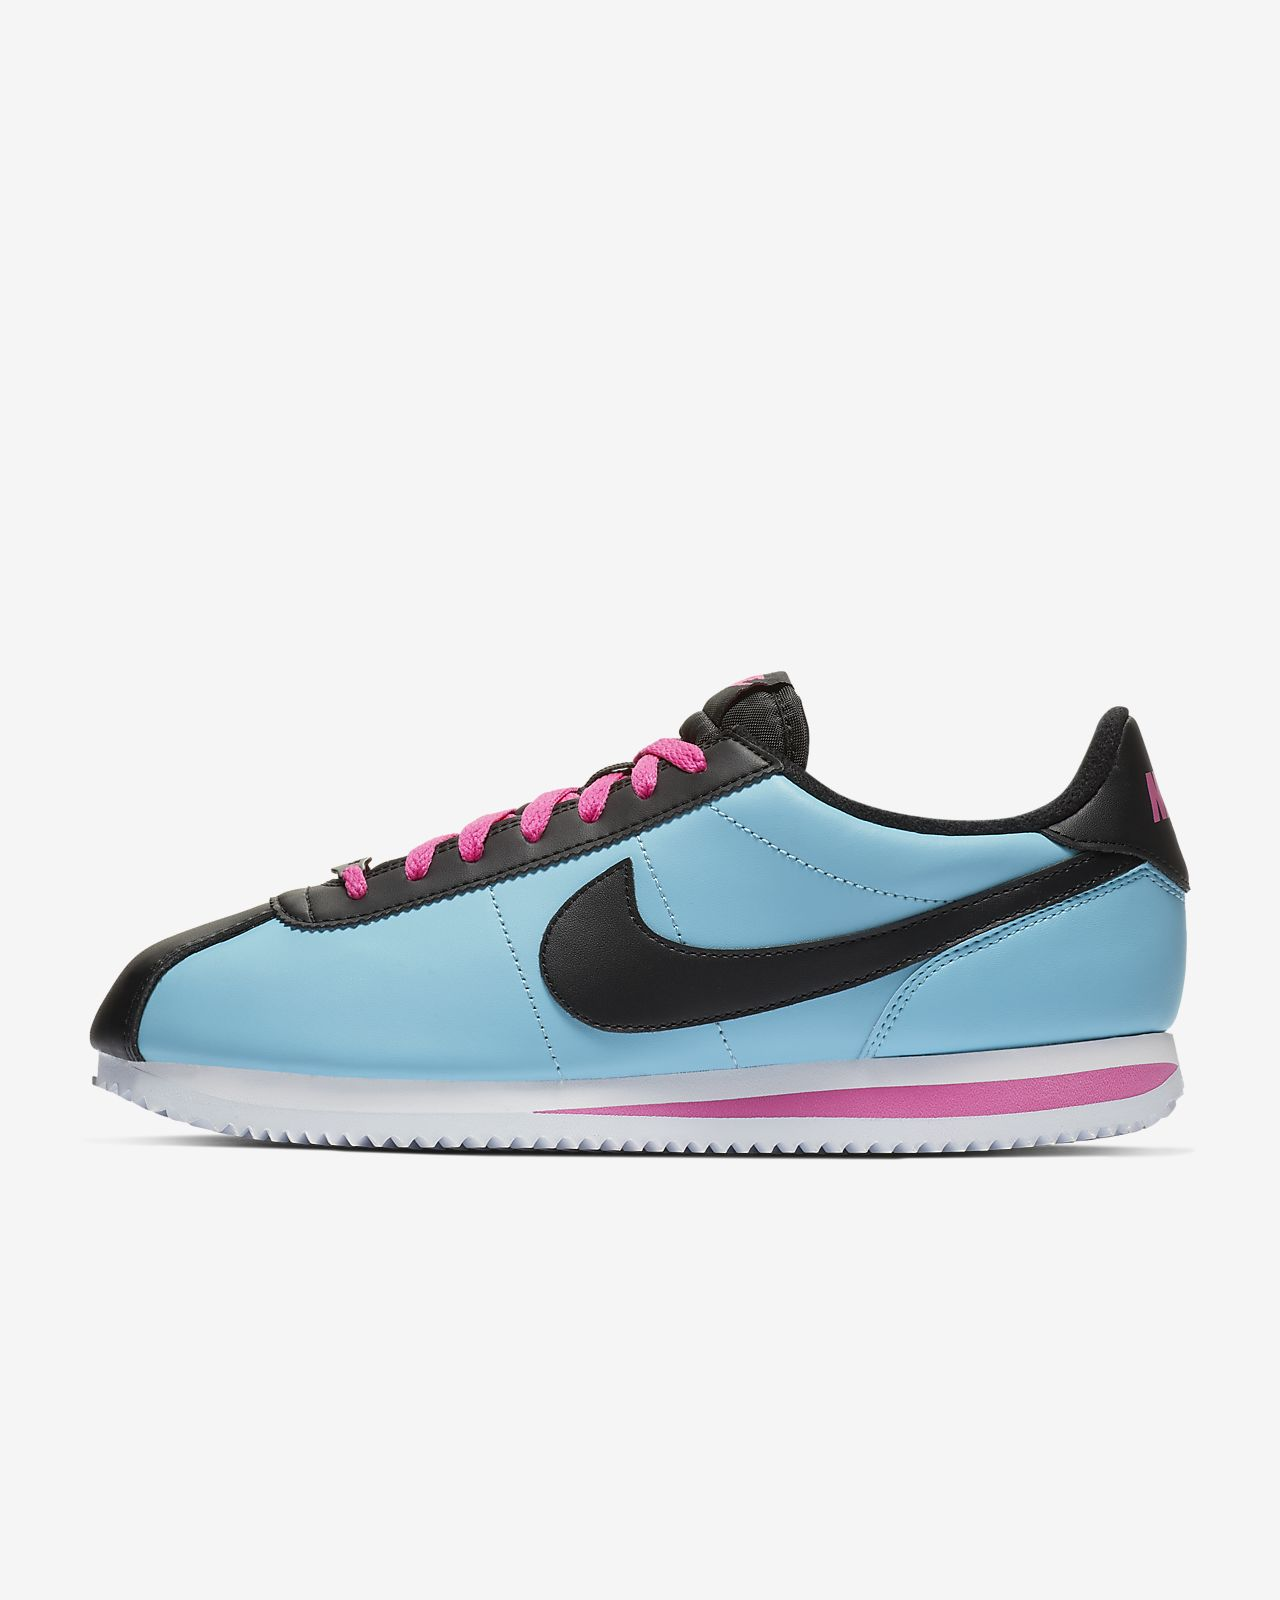 Nike Cortez Basic Leather Men's Shoe